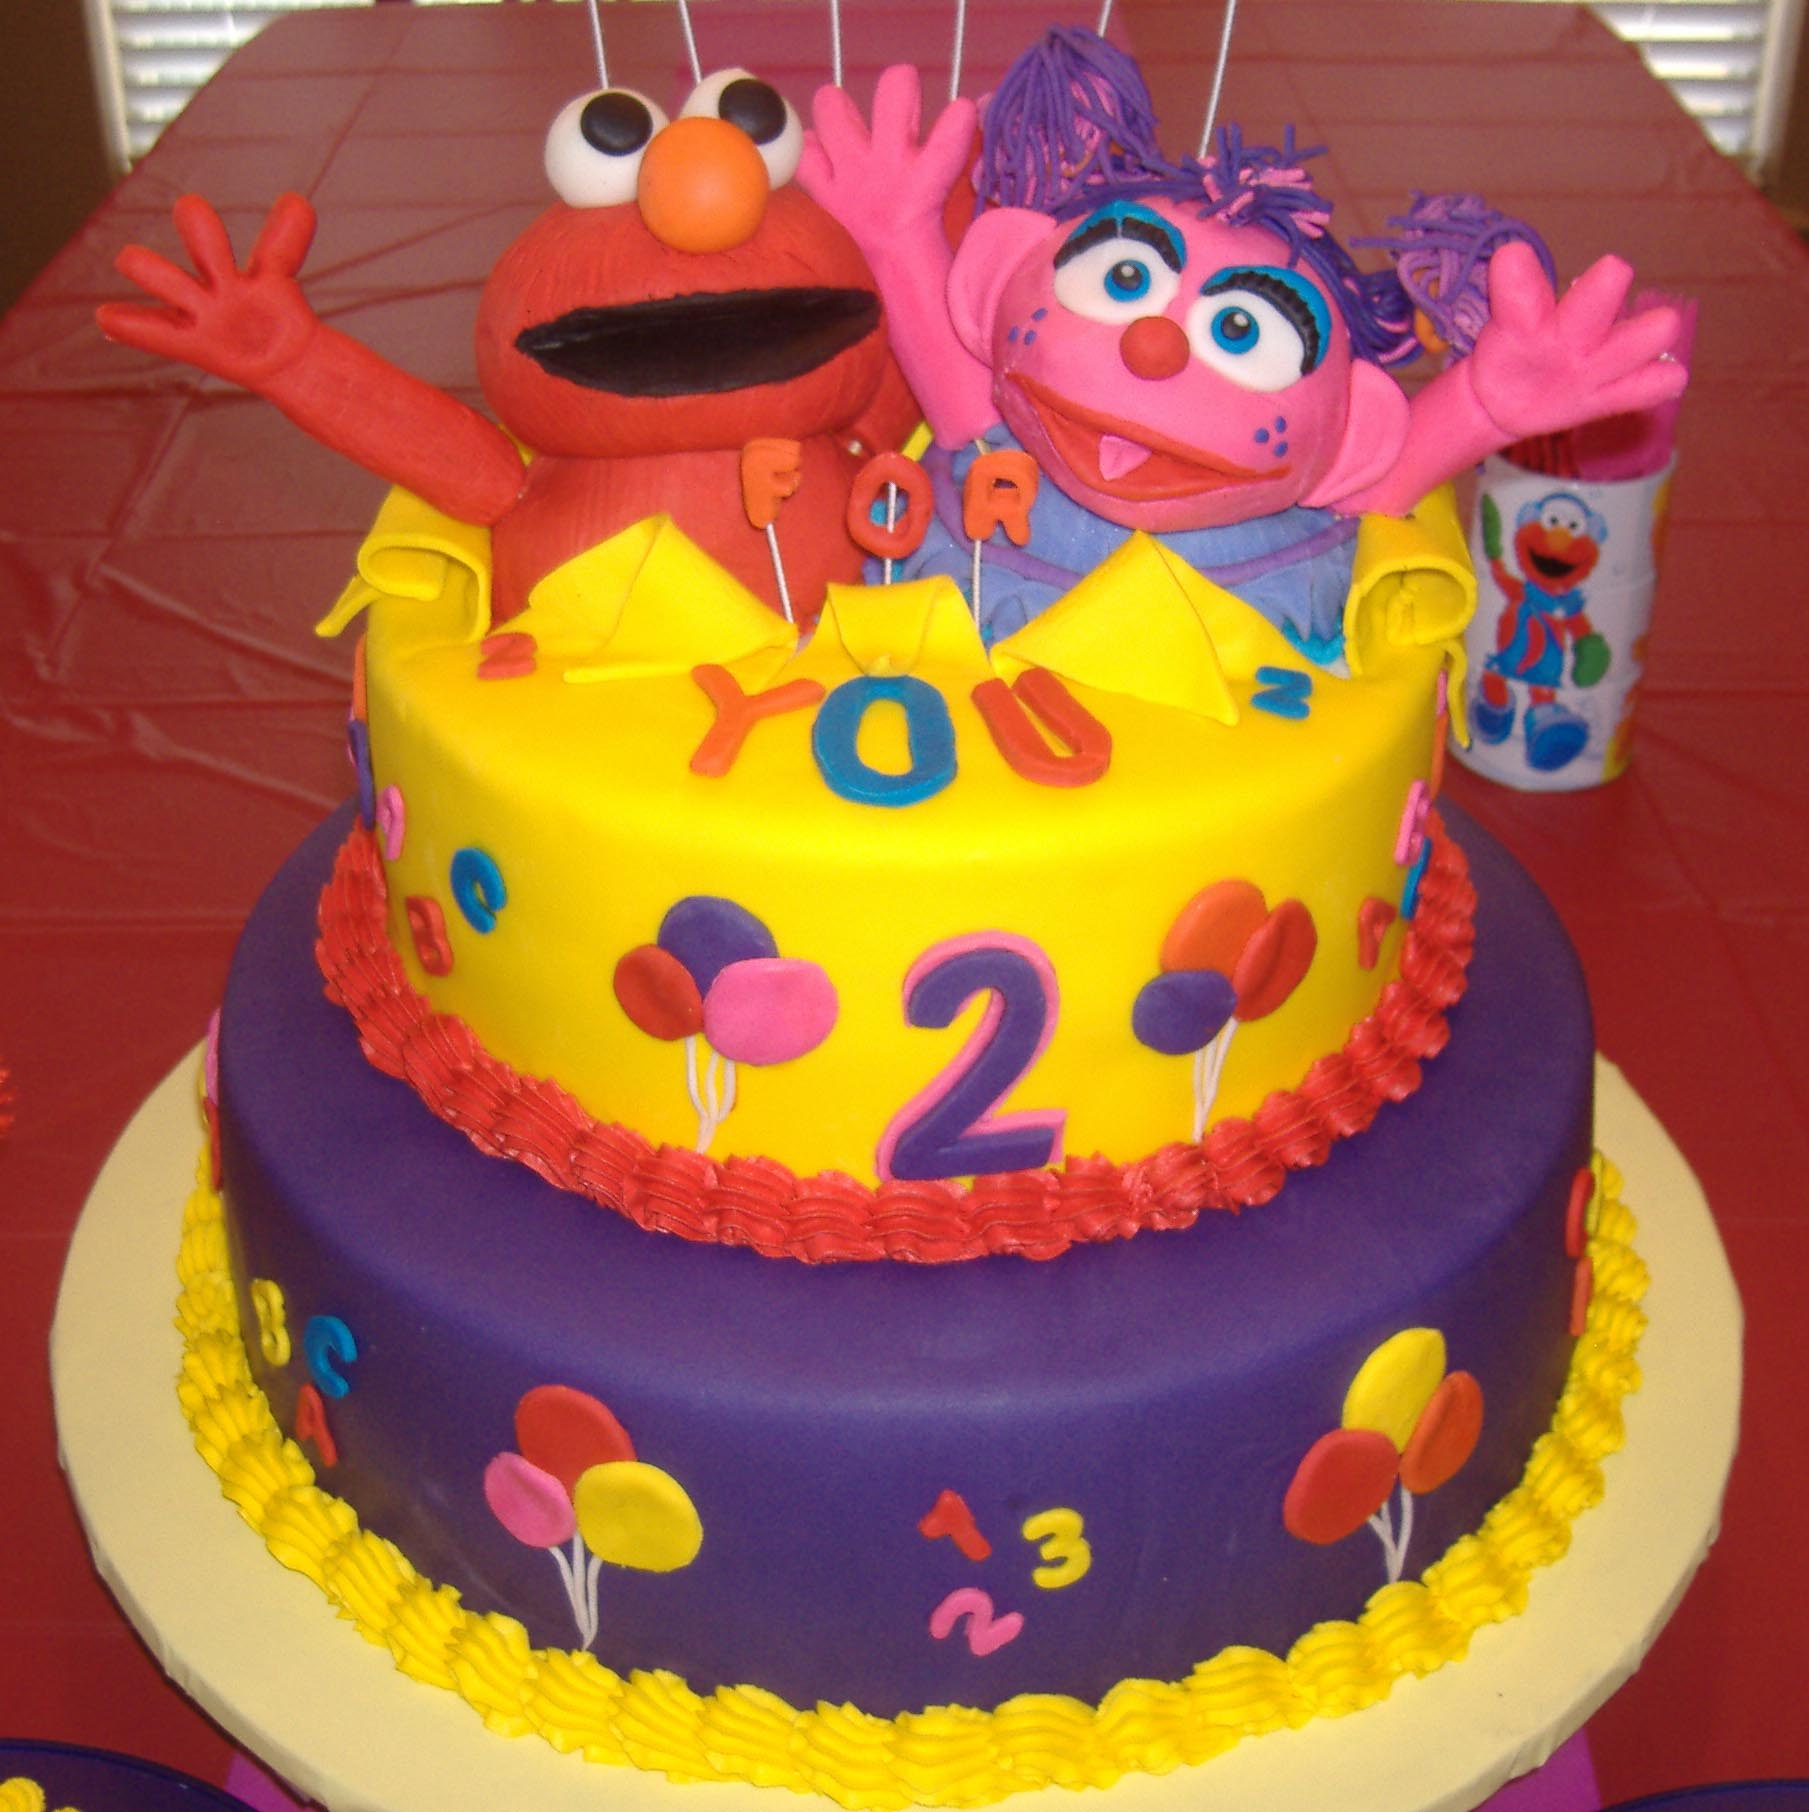 Elmo And Abby Party - Elmo and abby birthday cake